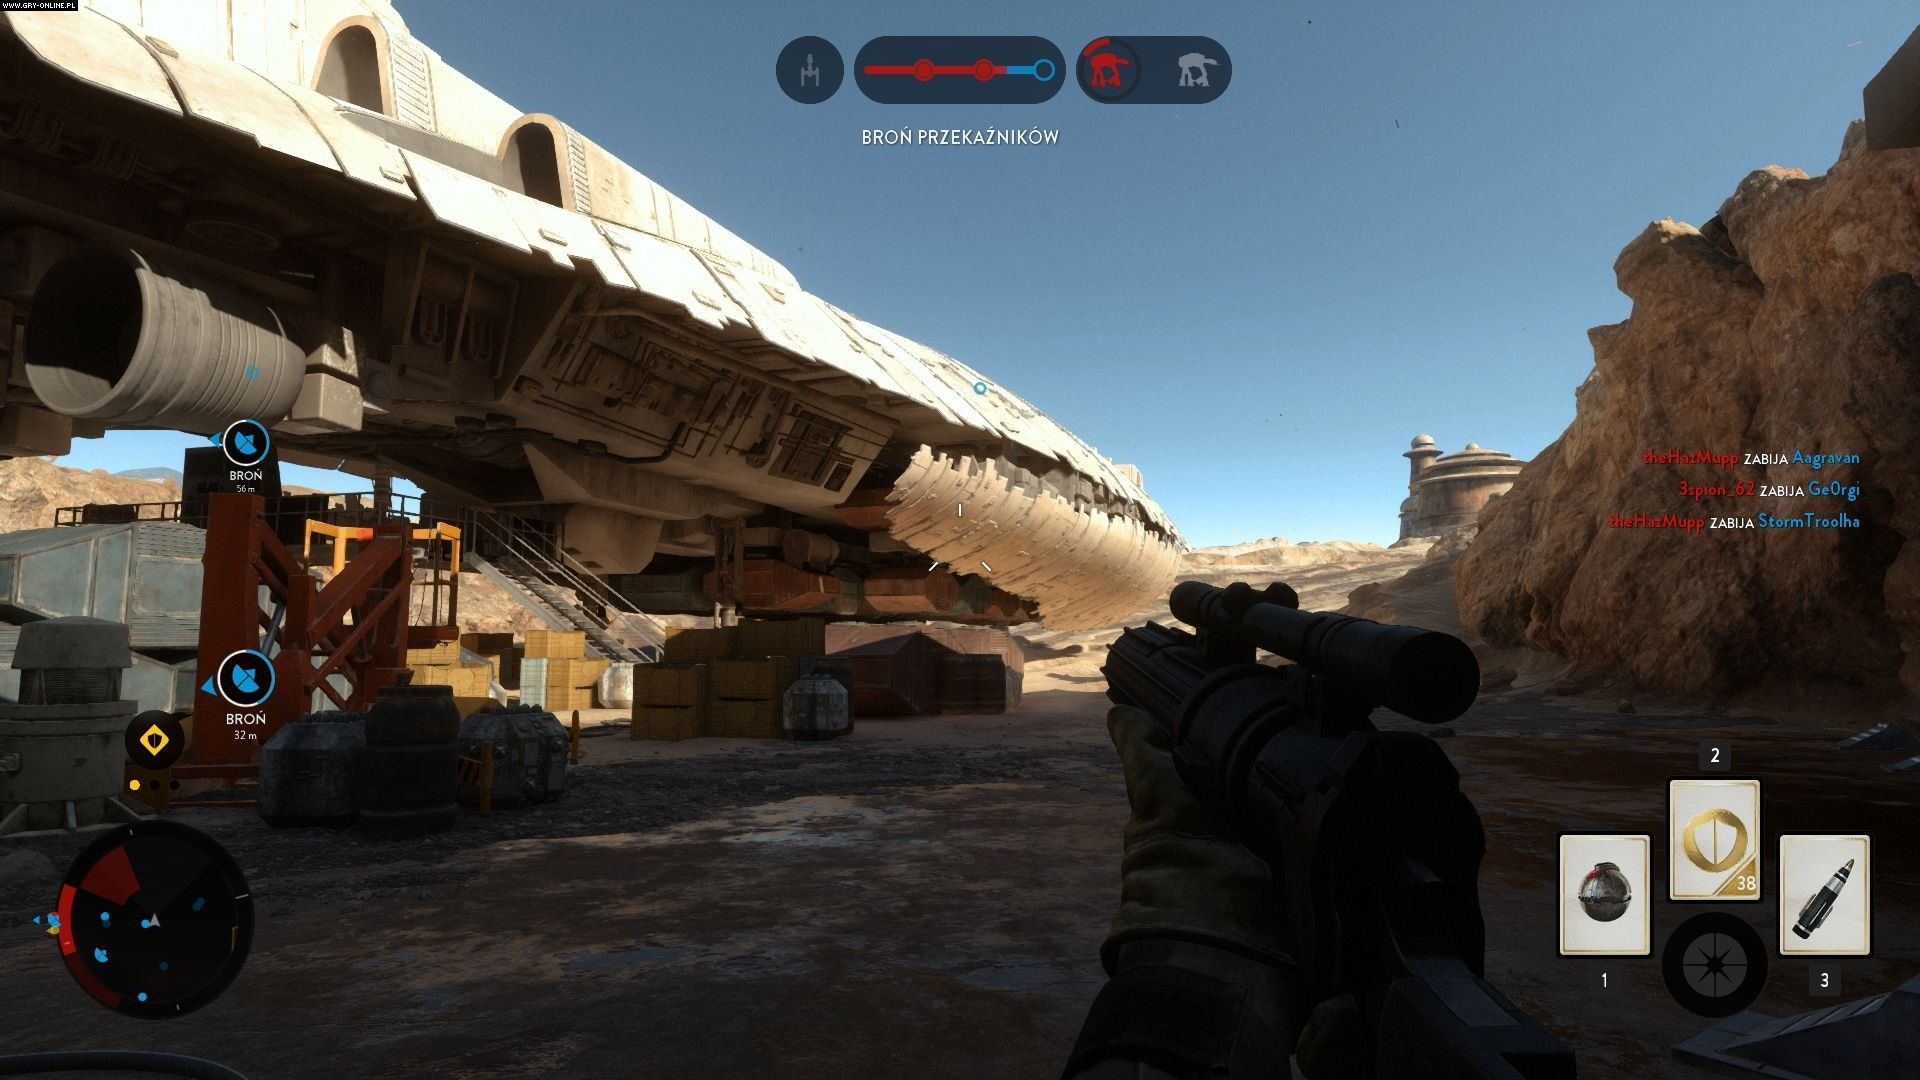 Star Wars: Battlefront PC Gry Screen 2/46, EA DICE / Digital Illusions CE, Electronic Arts Inc.